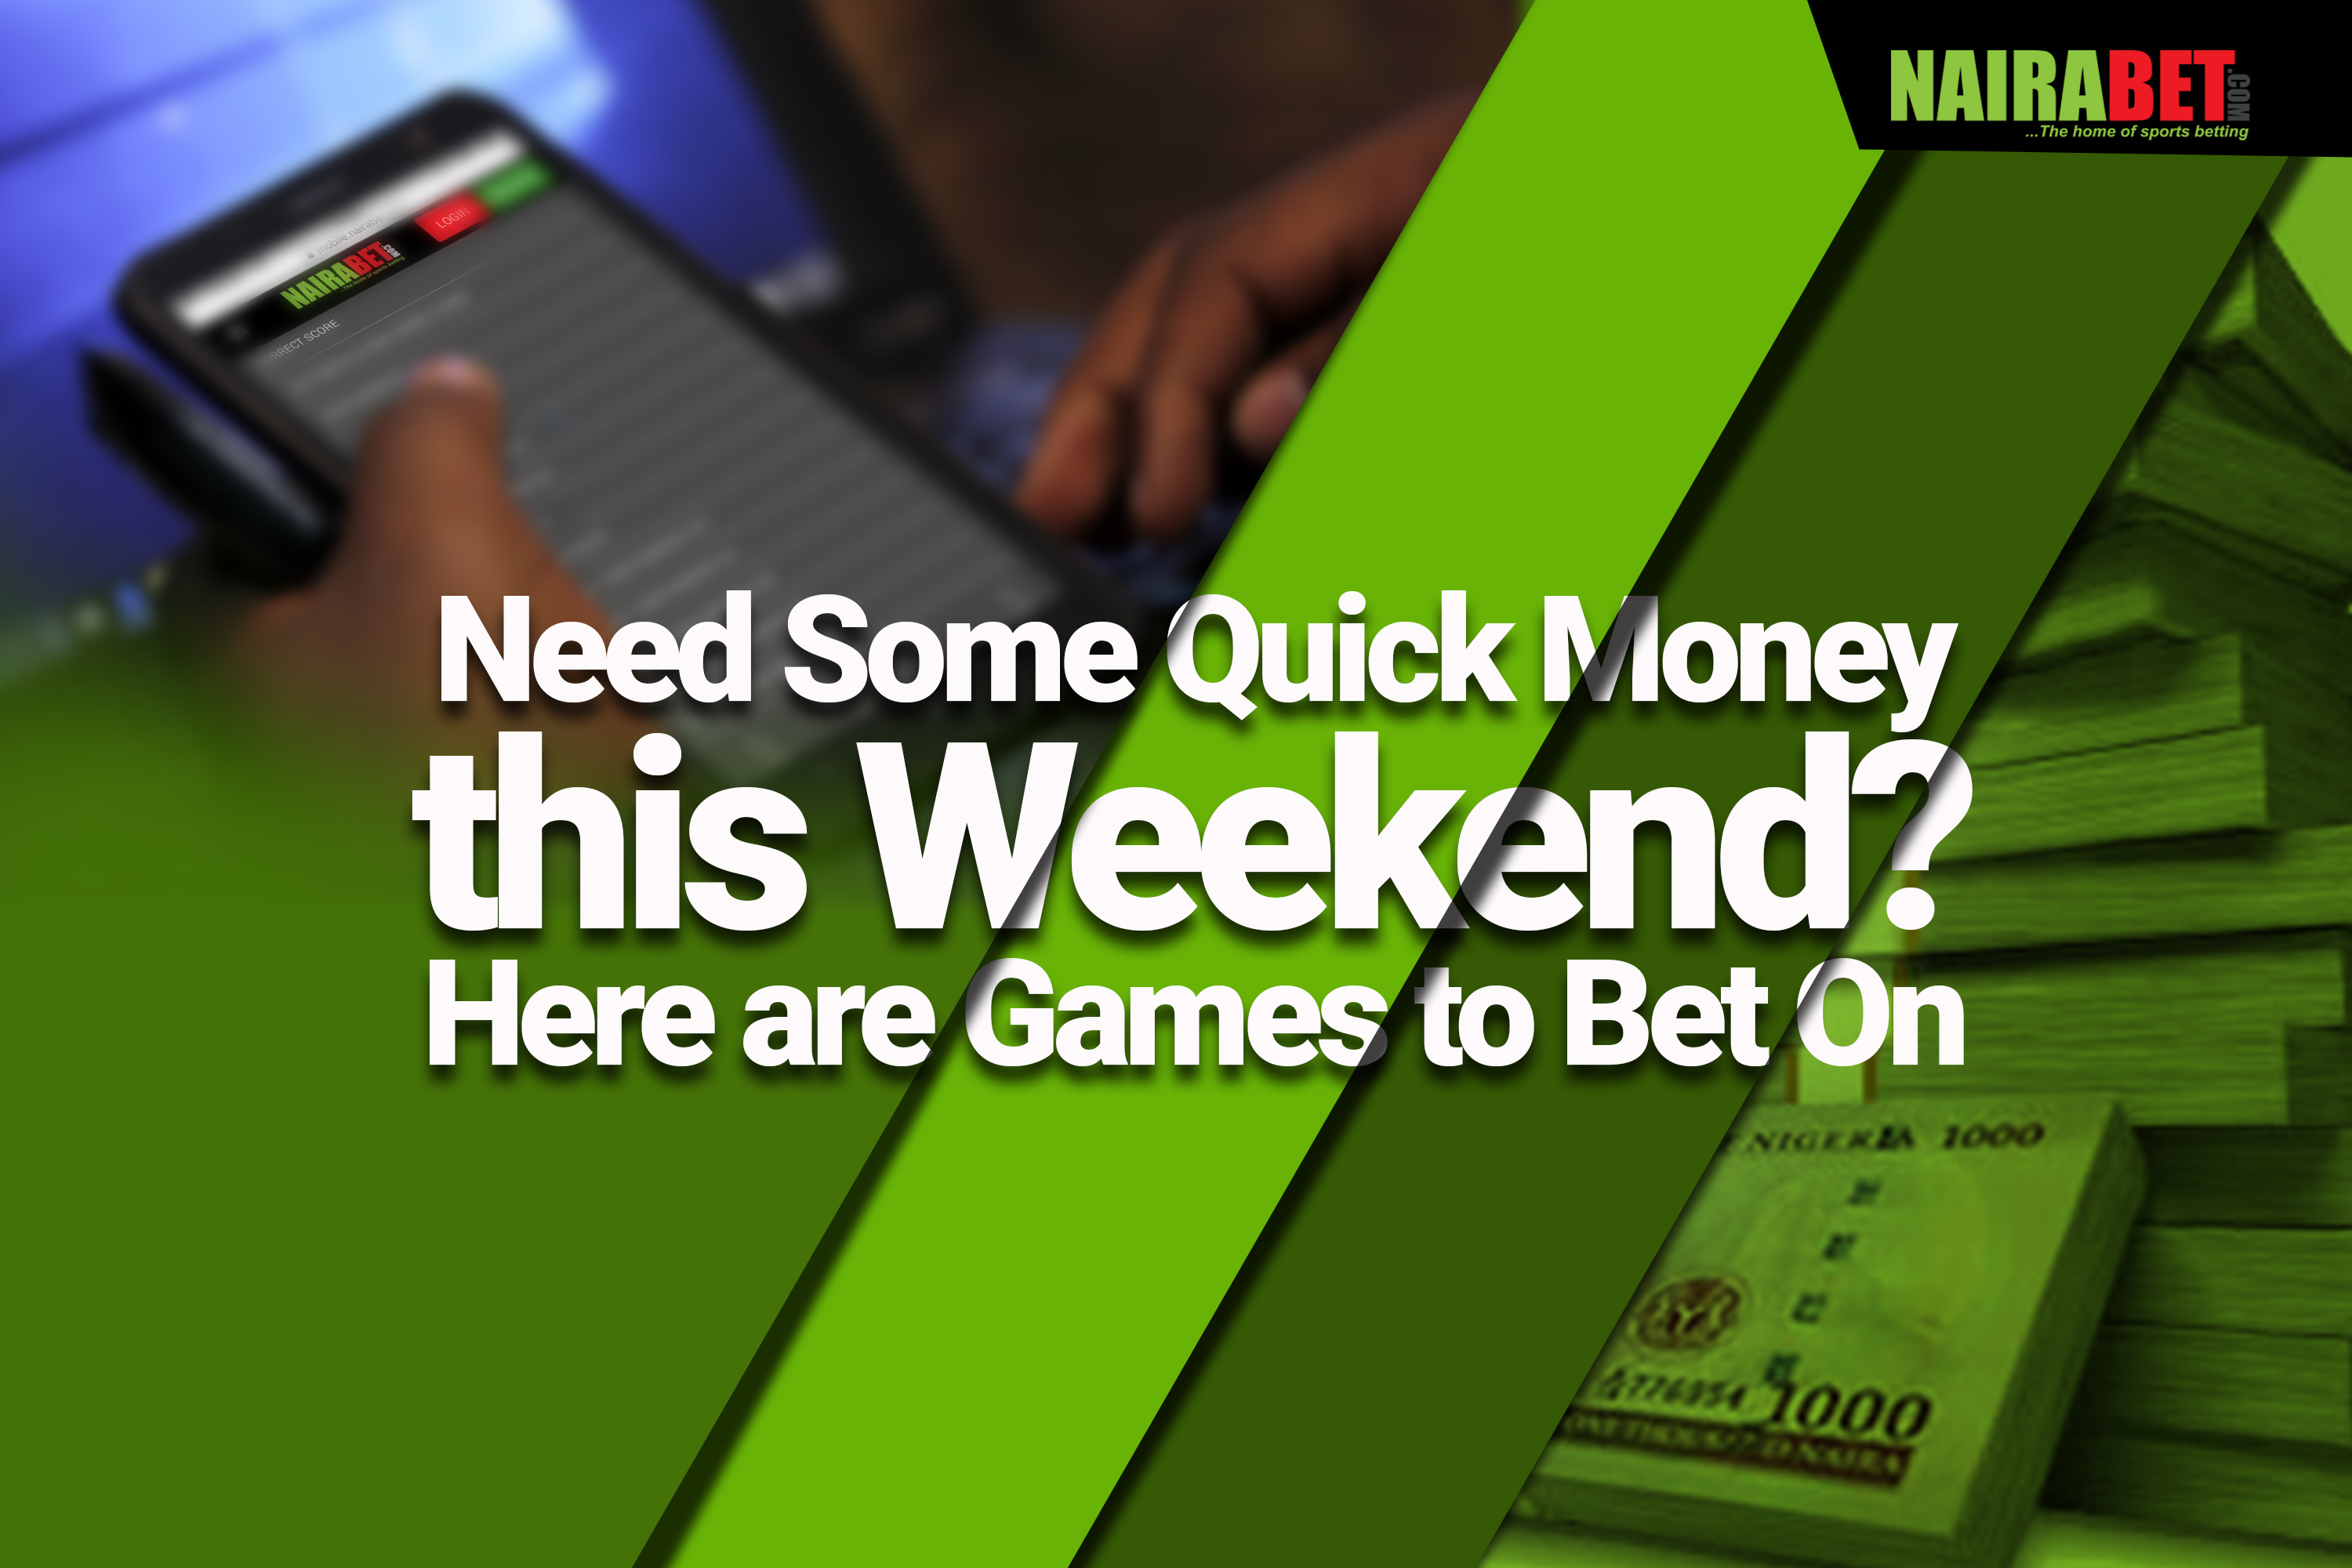 games to bet on this weekend